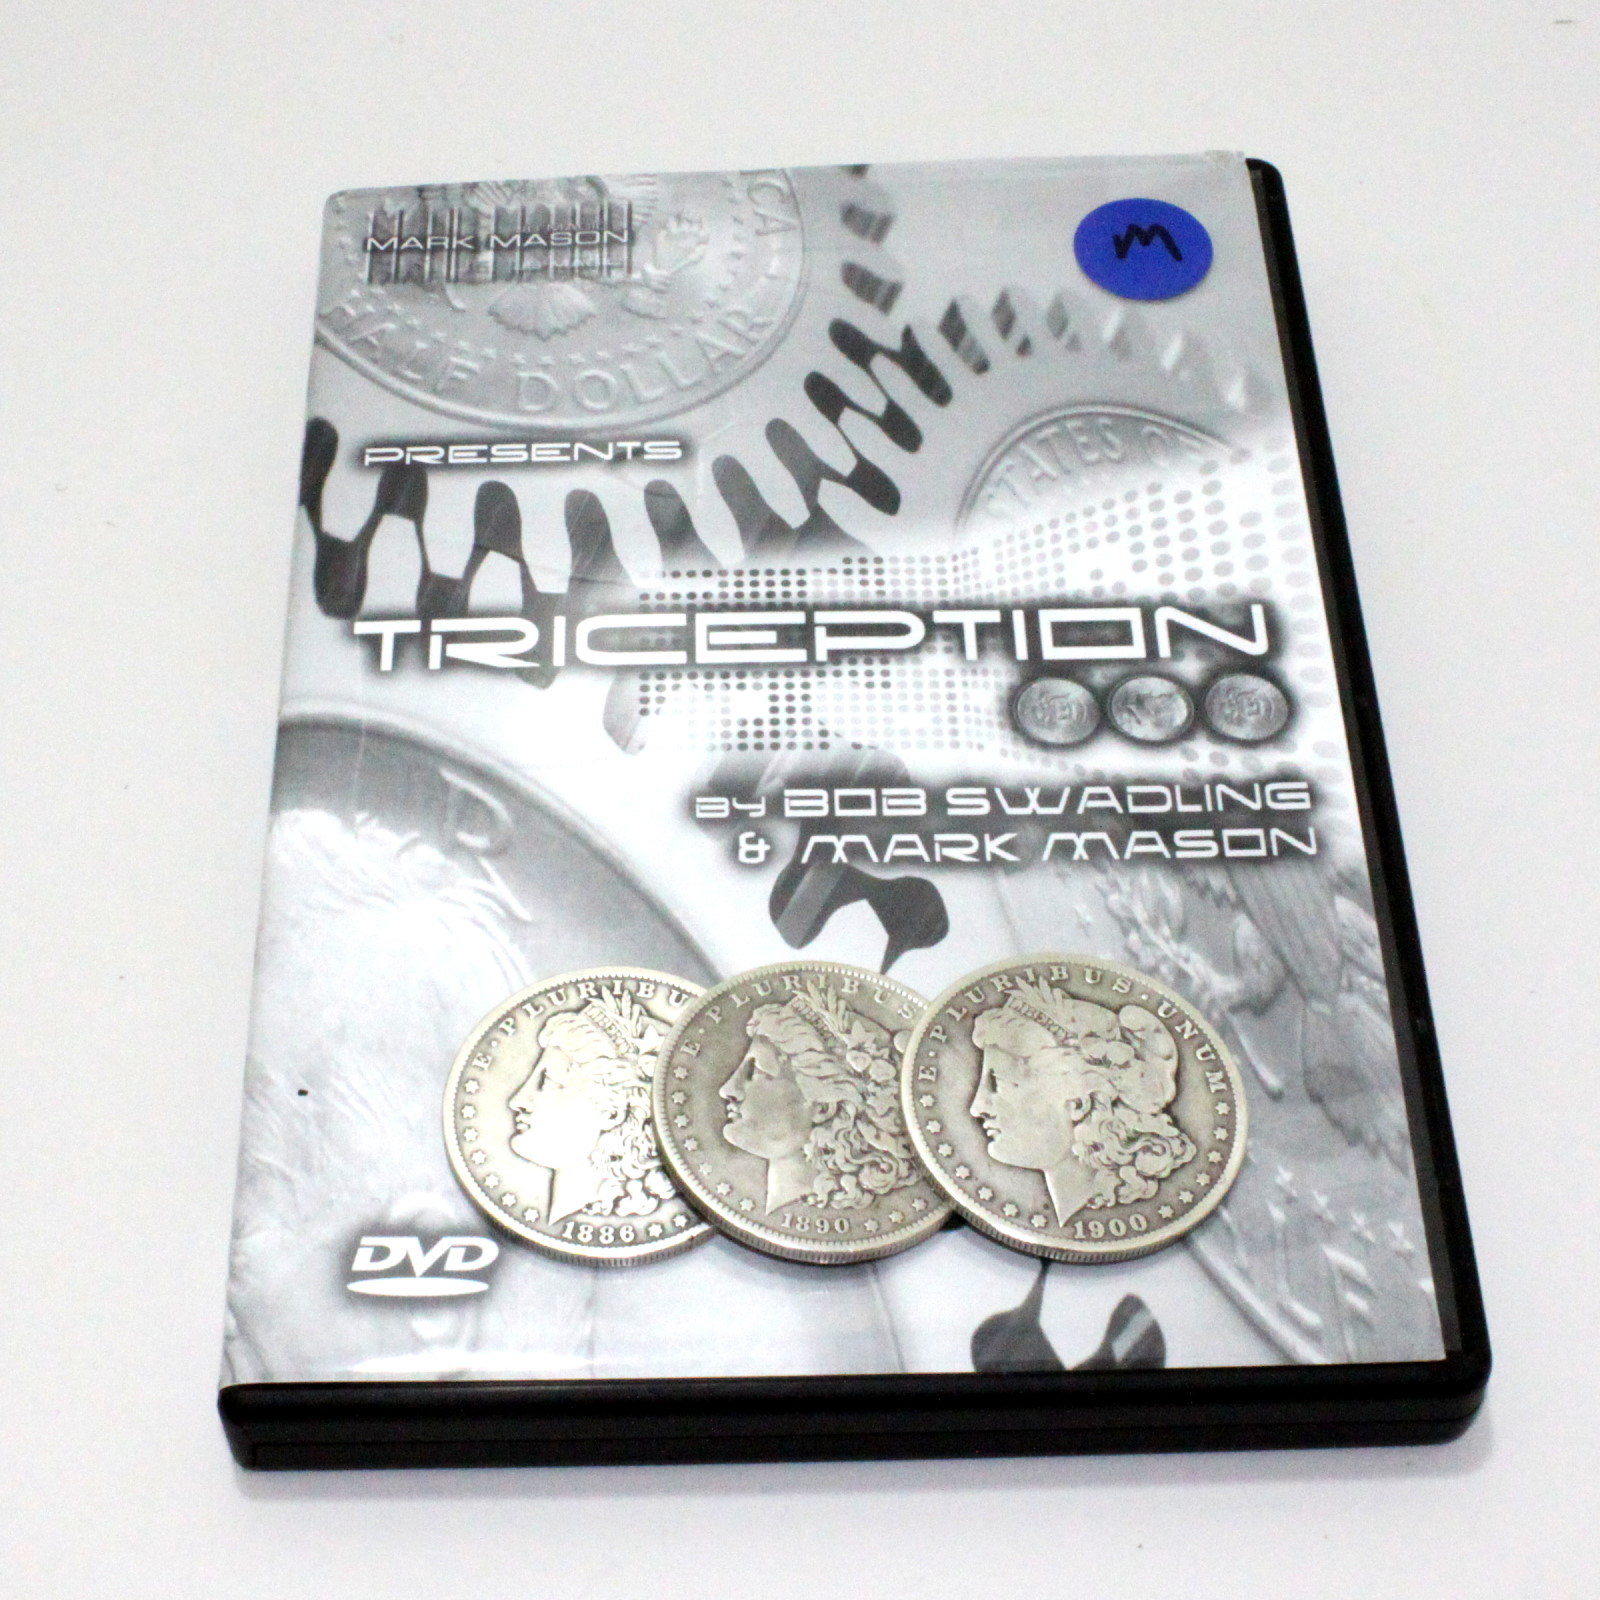 Triception (Silver Morgans) by Mark Mason and Bob Swadling